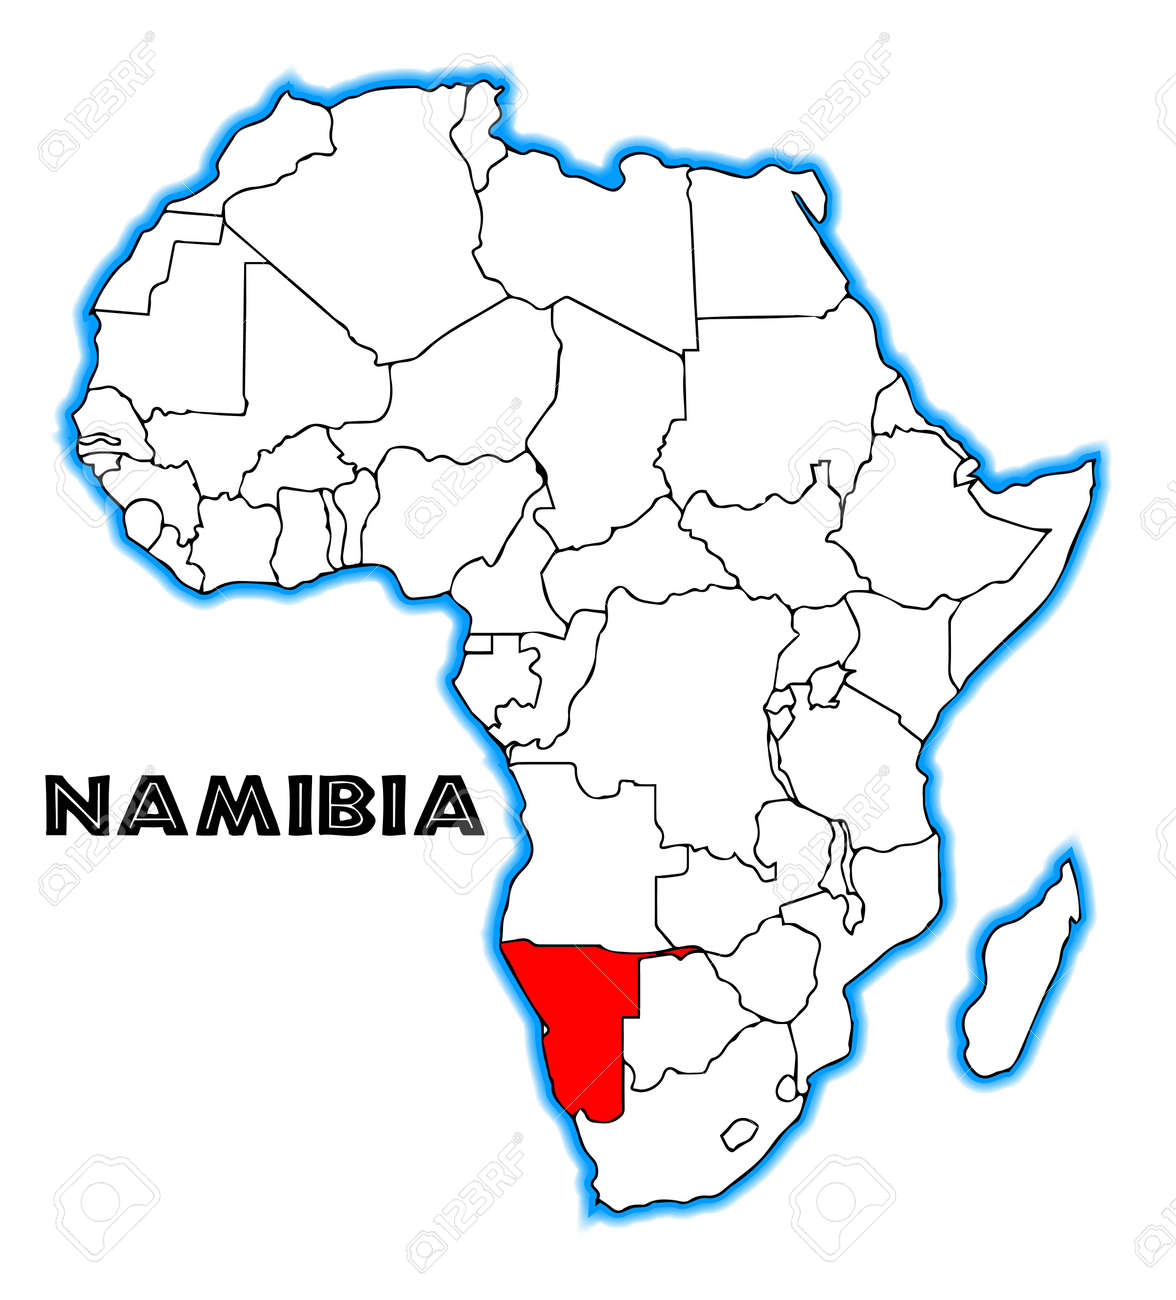 Namibia On Africa Map.Namibia Outline Inset Into A Map Of Africa Over A White Background